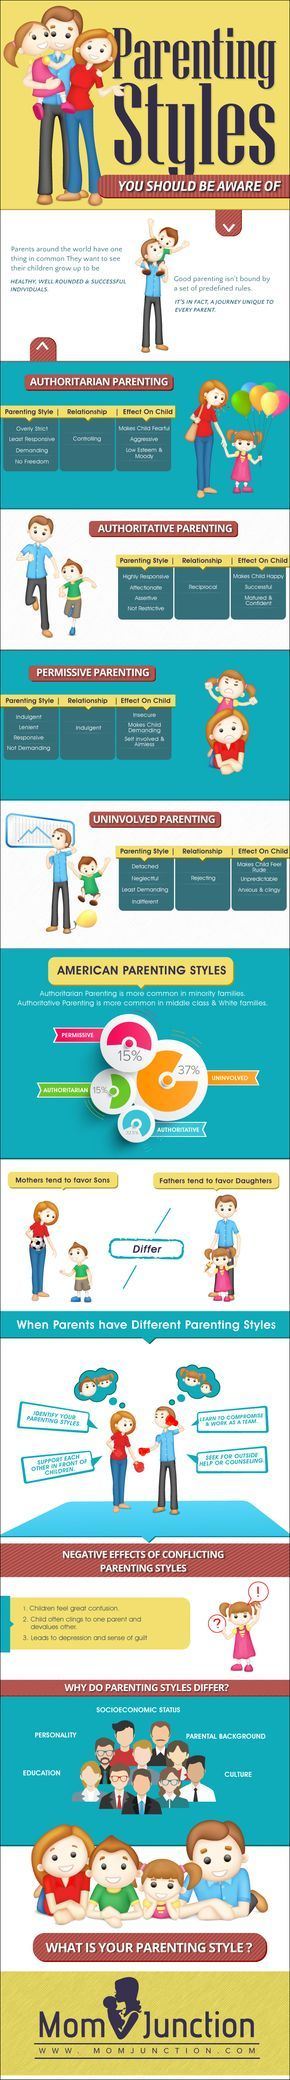 parenting influences on the development of What can research tell us about the influence of parenting parenting and the different ways it can affect father's influence on child development.